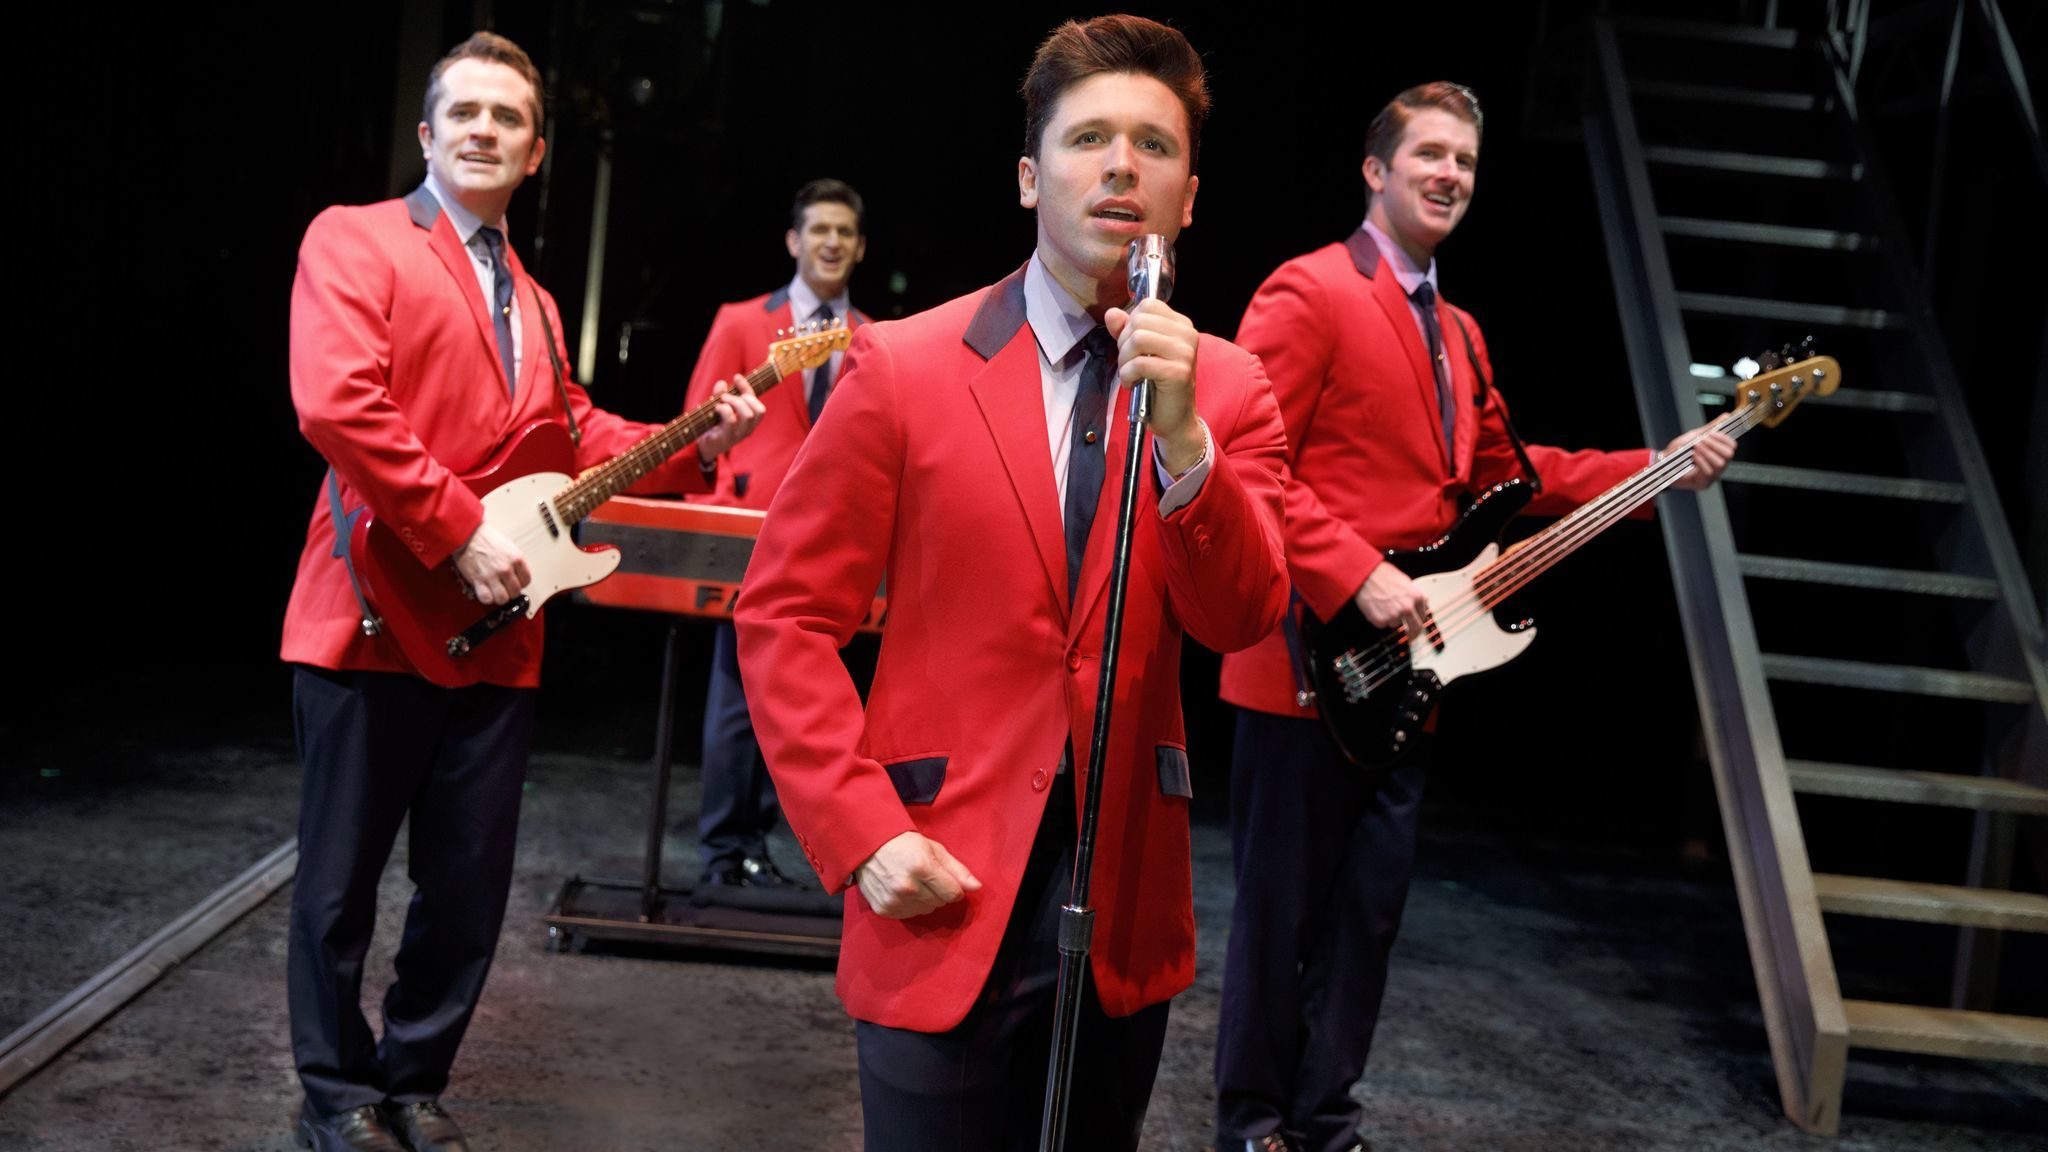 'Jersey Boys' returns to Costa Mesa for a three-night run | The Los Angeles Times